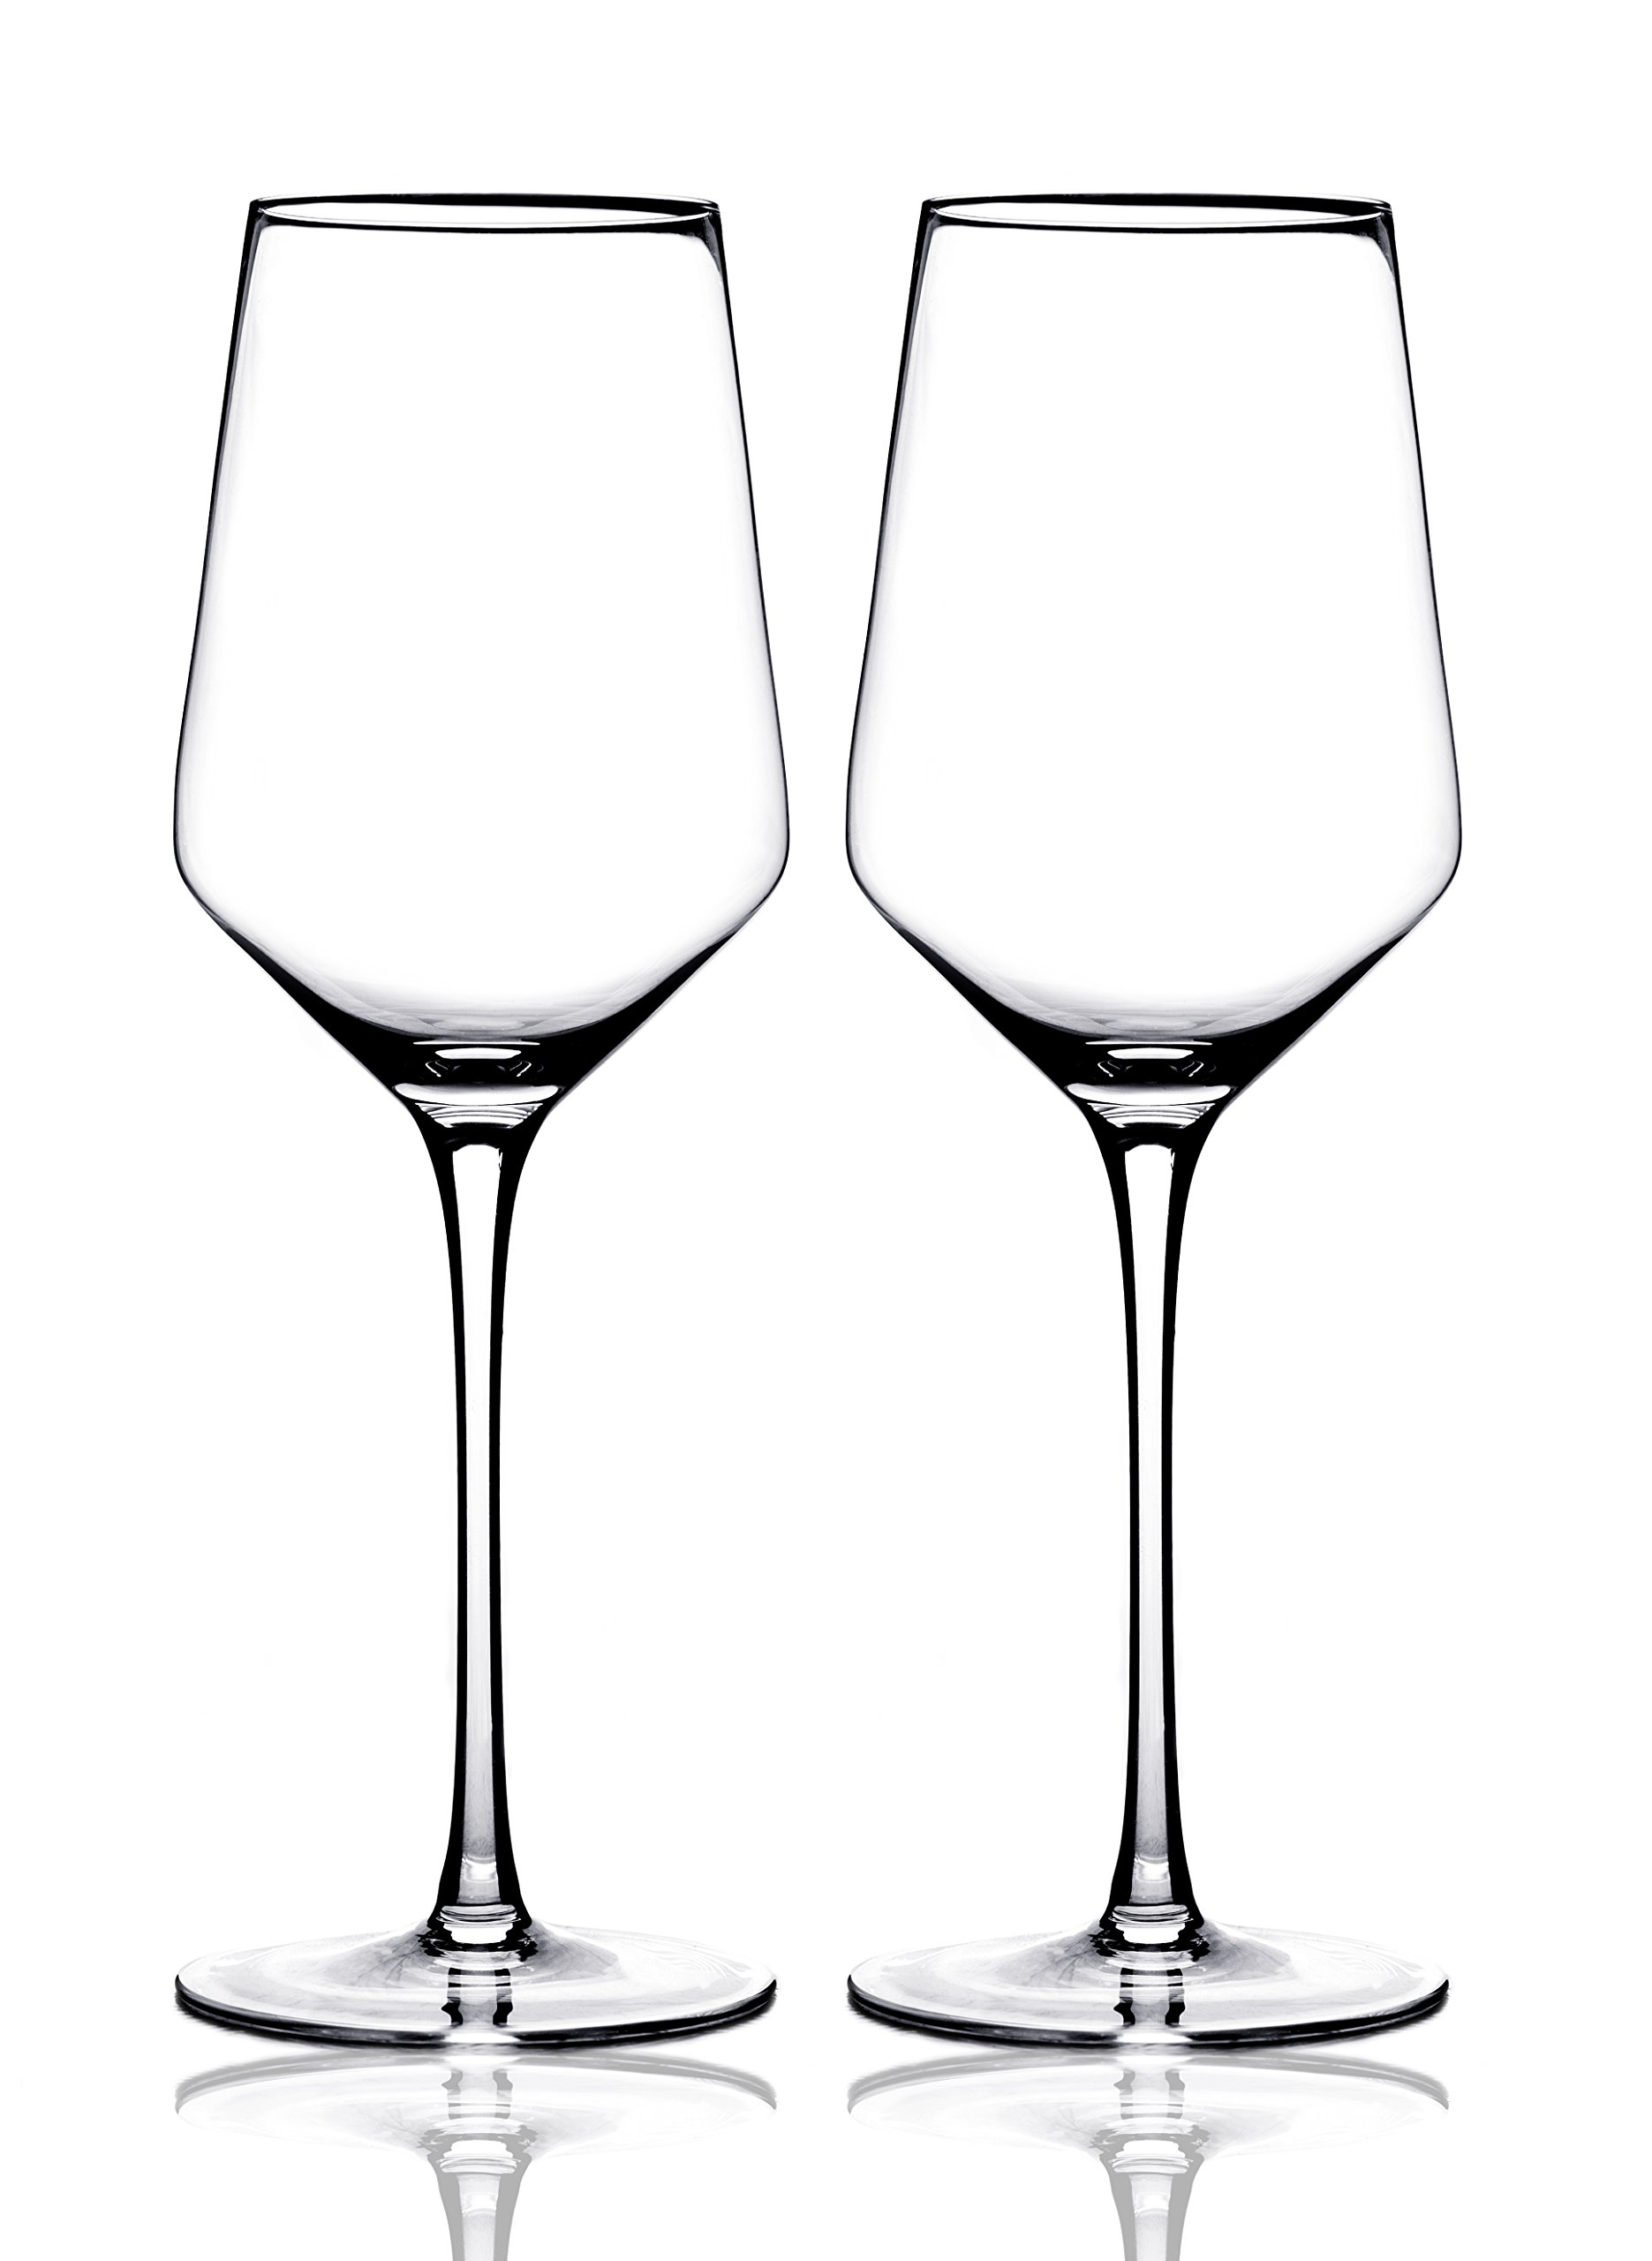 Merry Crystal- Set of 2 Clear Glass Drinking Cups - 17oz Restaurant Style Stemware - Elegant Box by Award Winning Designer with Special Xmas Bag- Unleaded - Dishwasher Safe by AY&Z Frostware (Image #5)